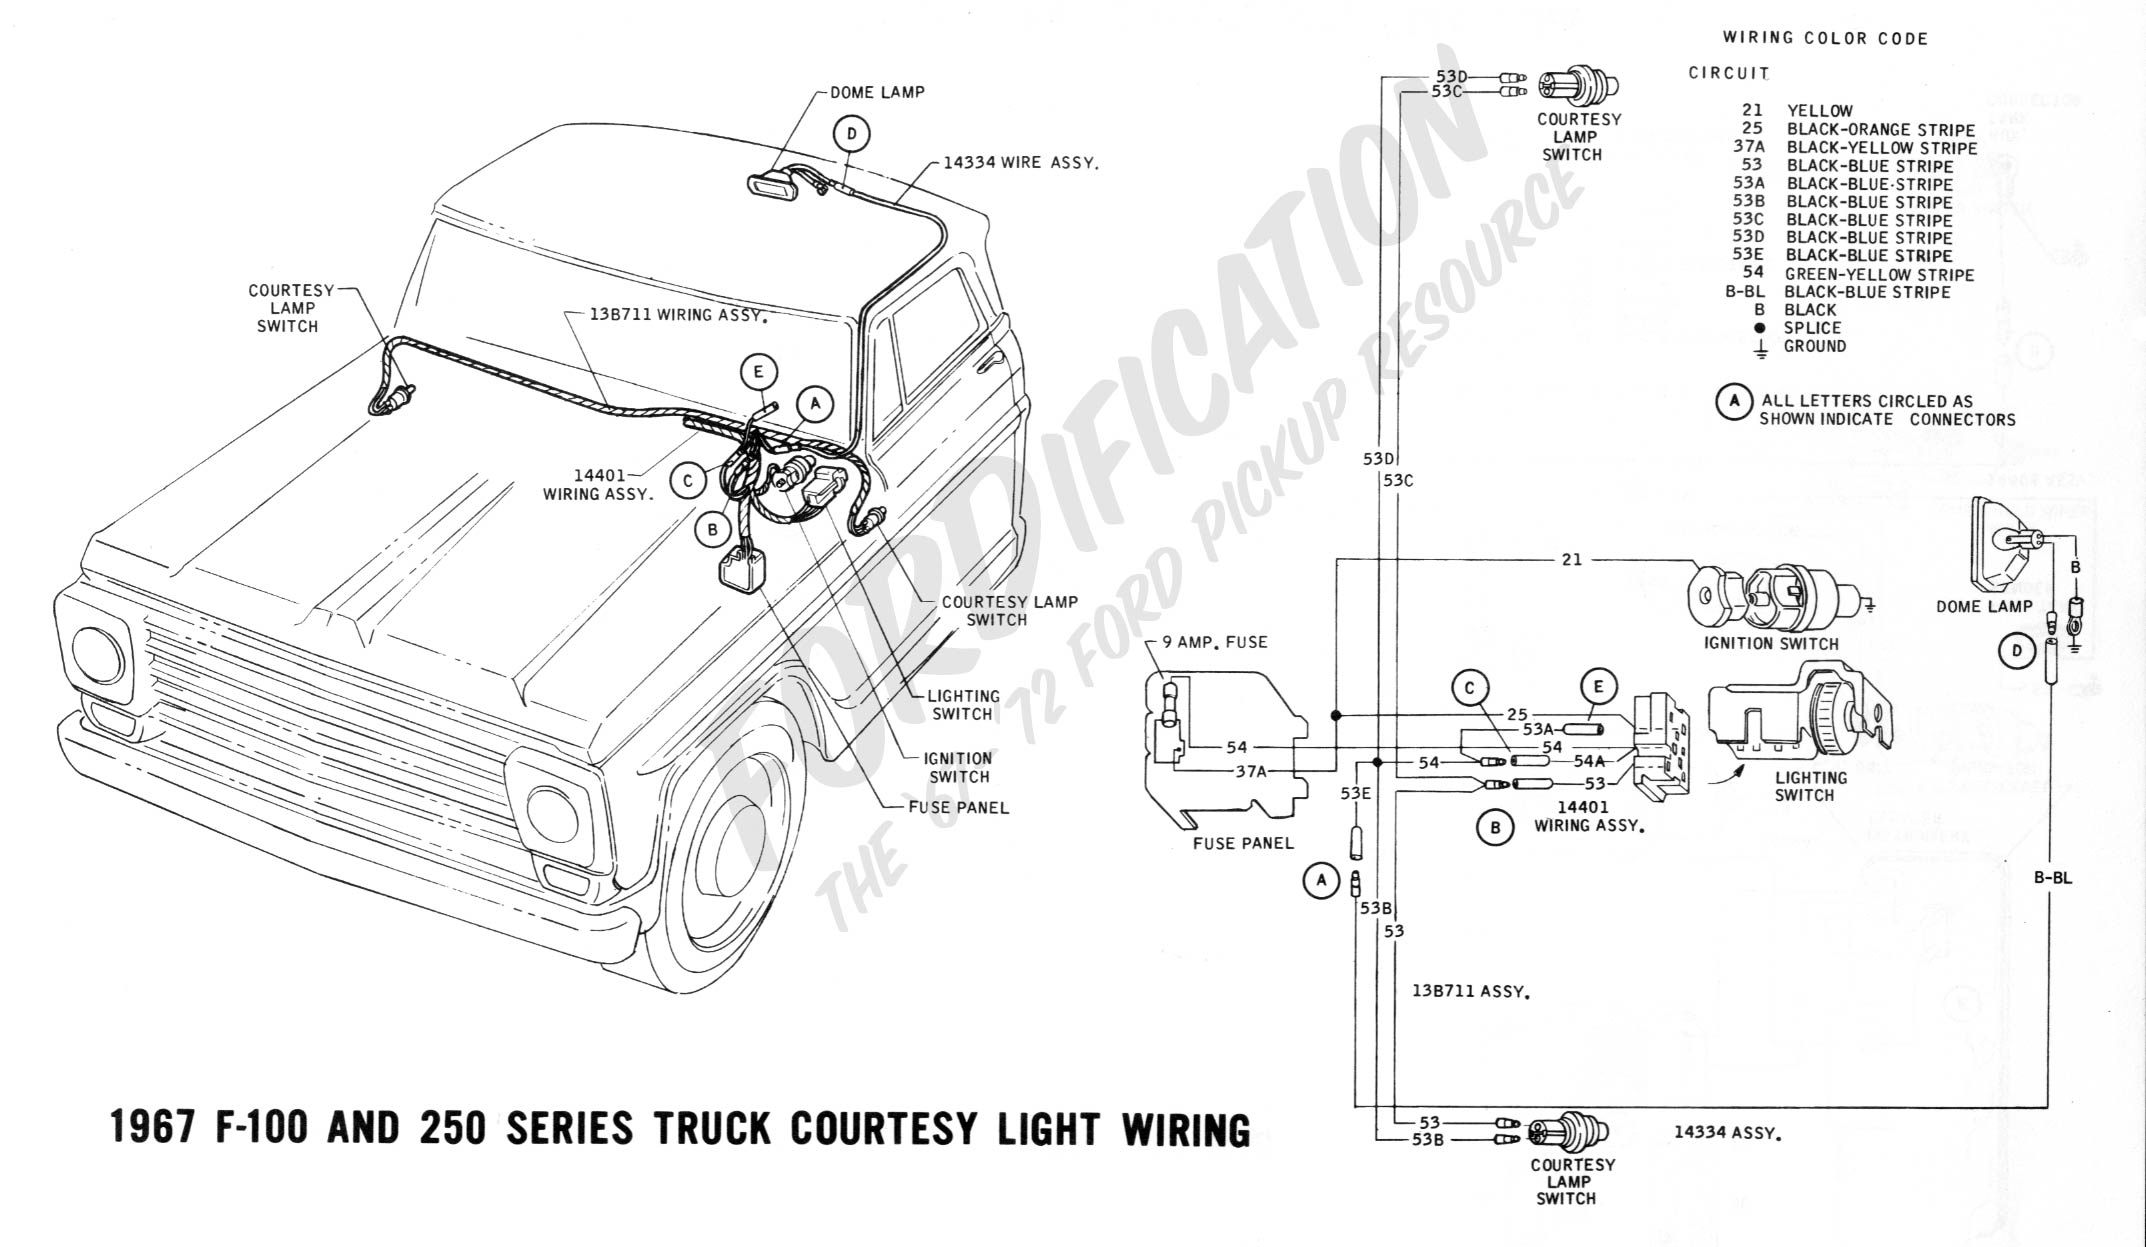 wiring 1967courtesylight ford truck technical drawings and schematics section h wiring Universal Ignition Switch Wiring Diagram at gsmportal.co